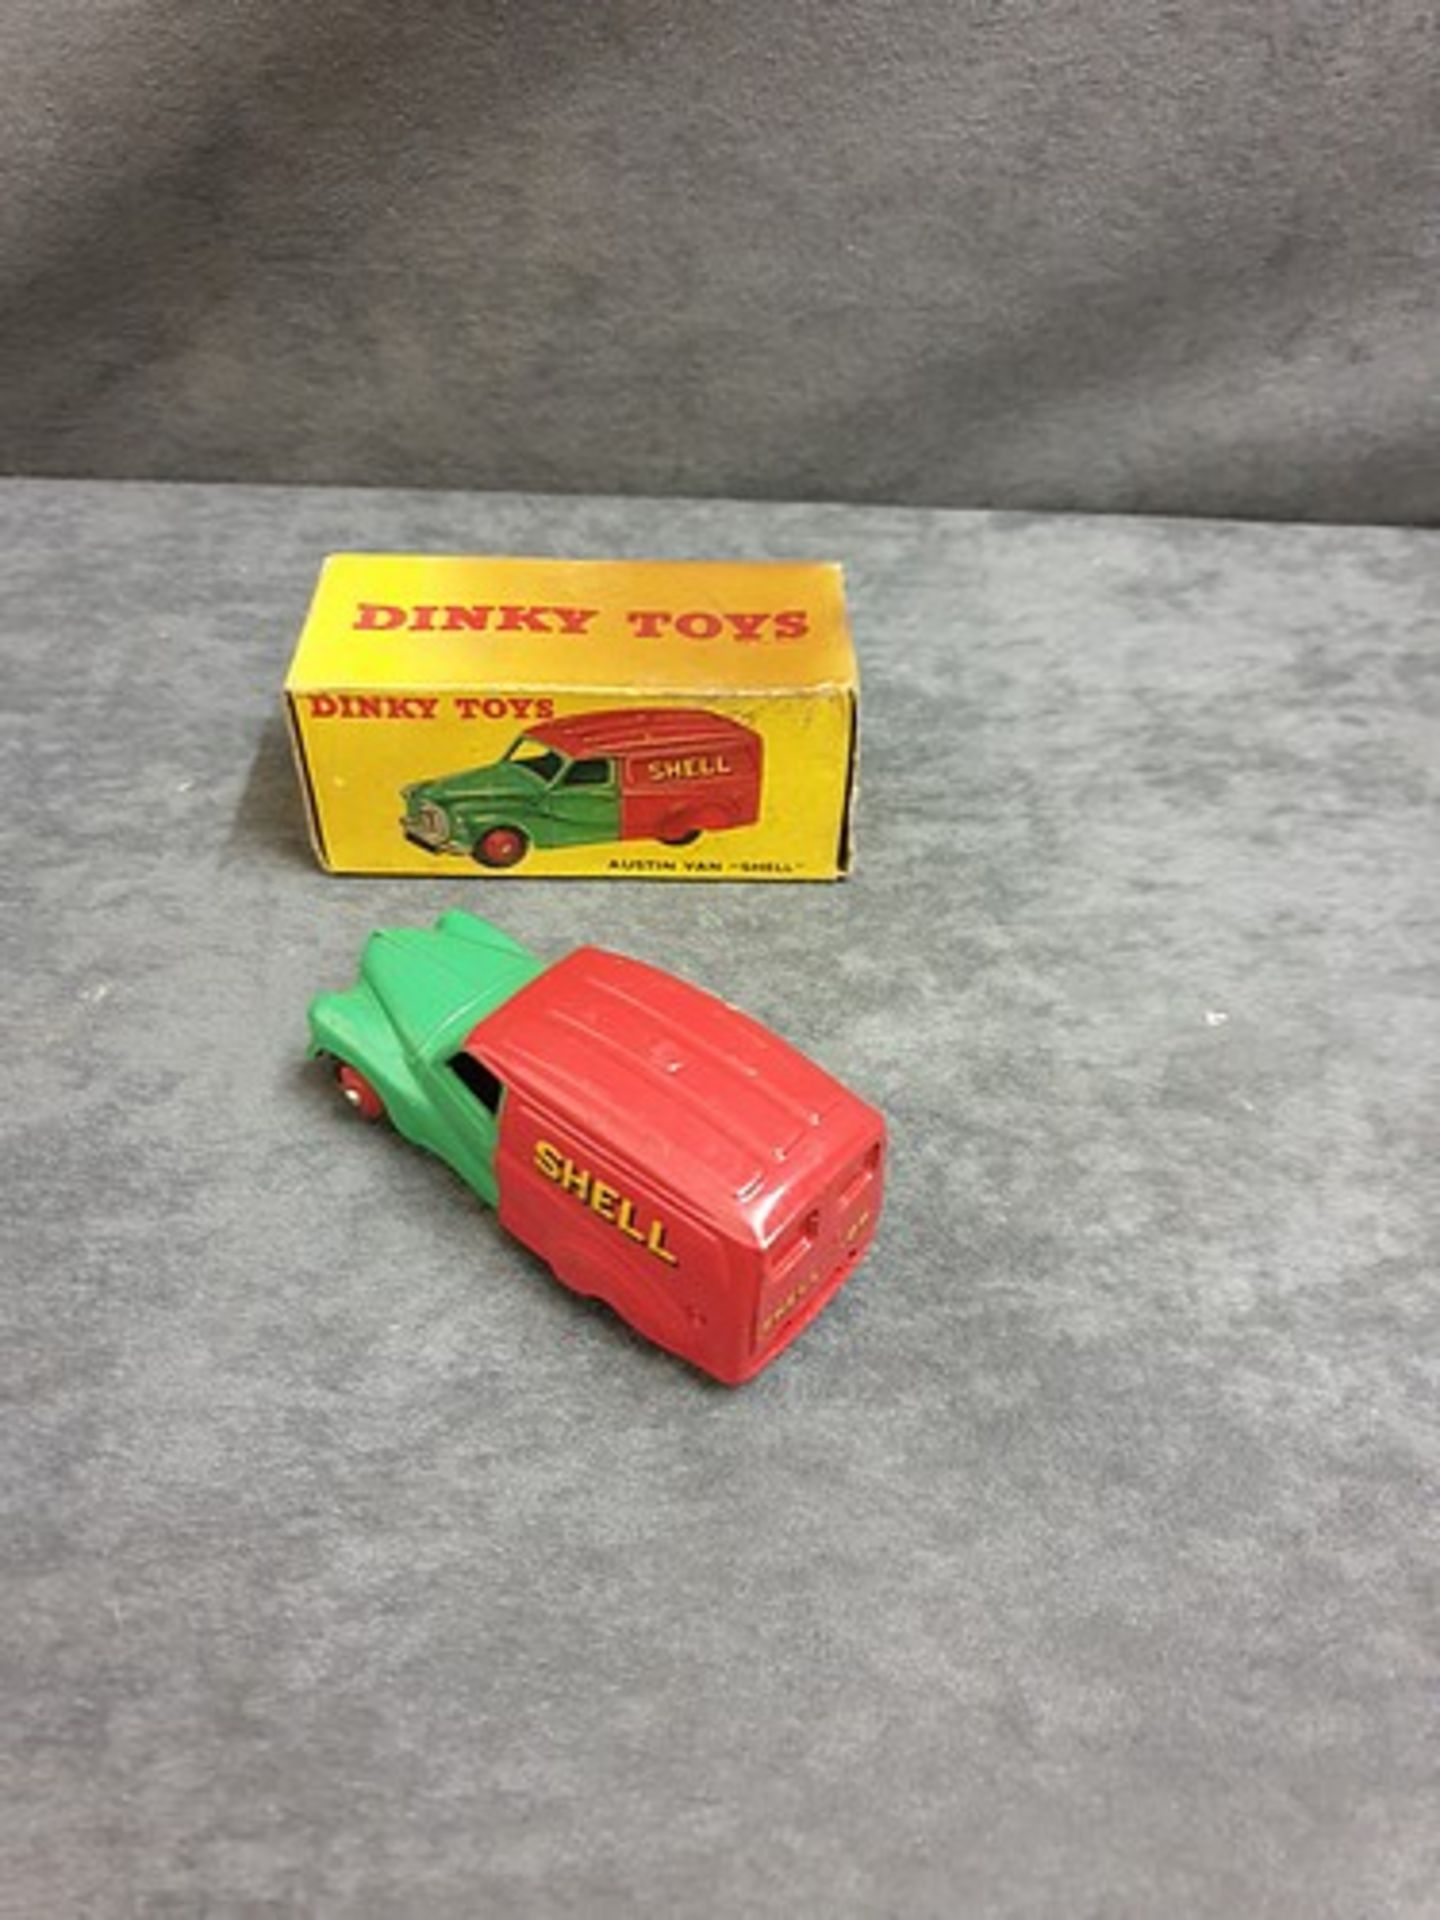 Dinky #470 Austin Van Shell Virtually Mint Model In Very Good Soiled Firm Box 1954 - 1956 - Image 3 of 3